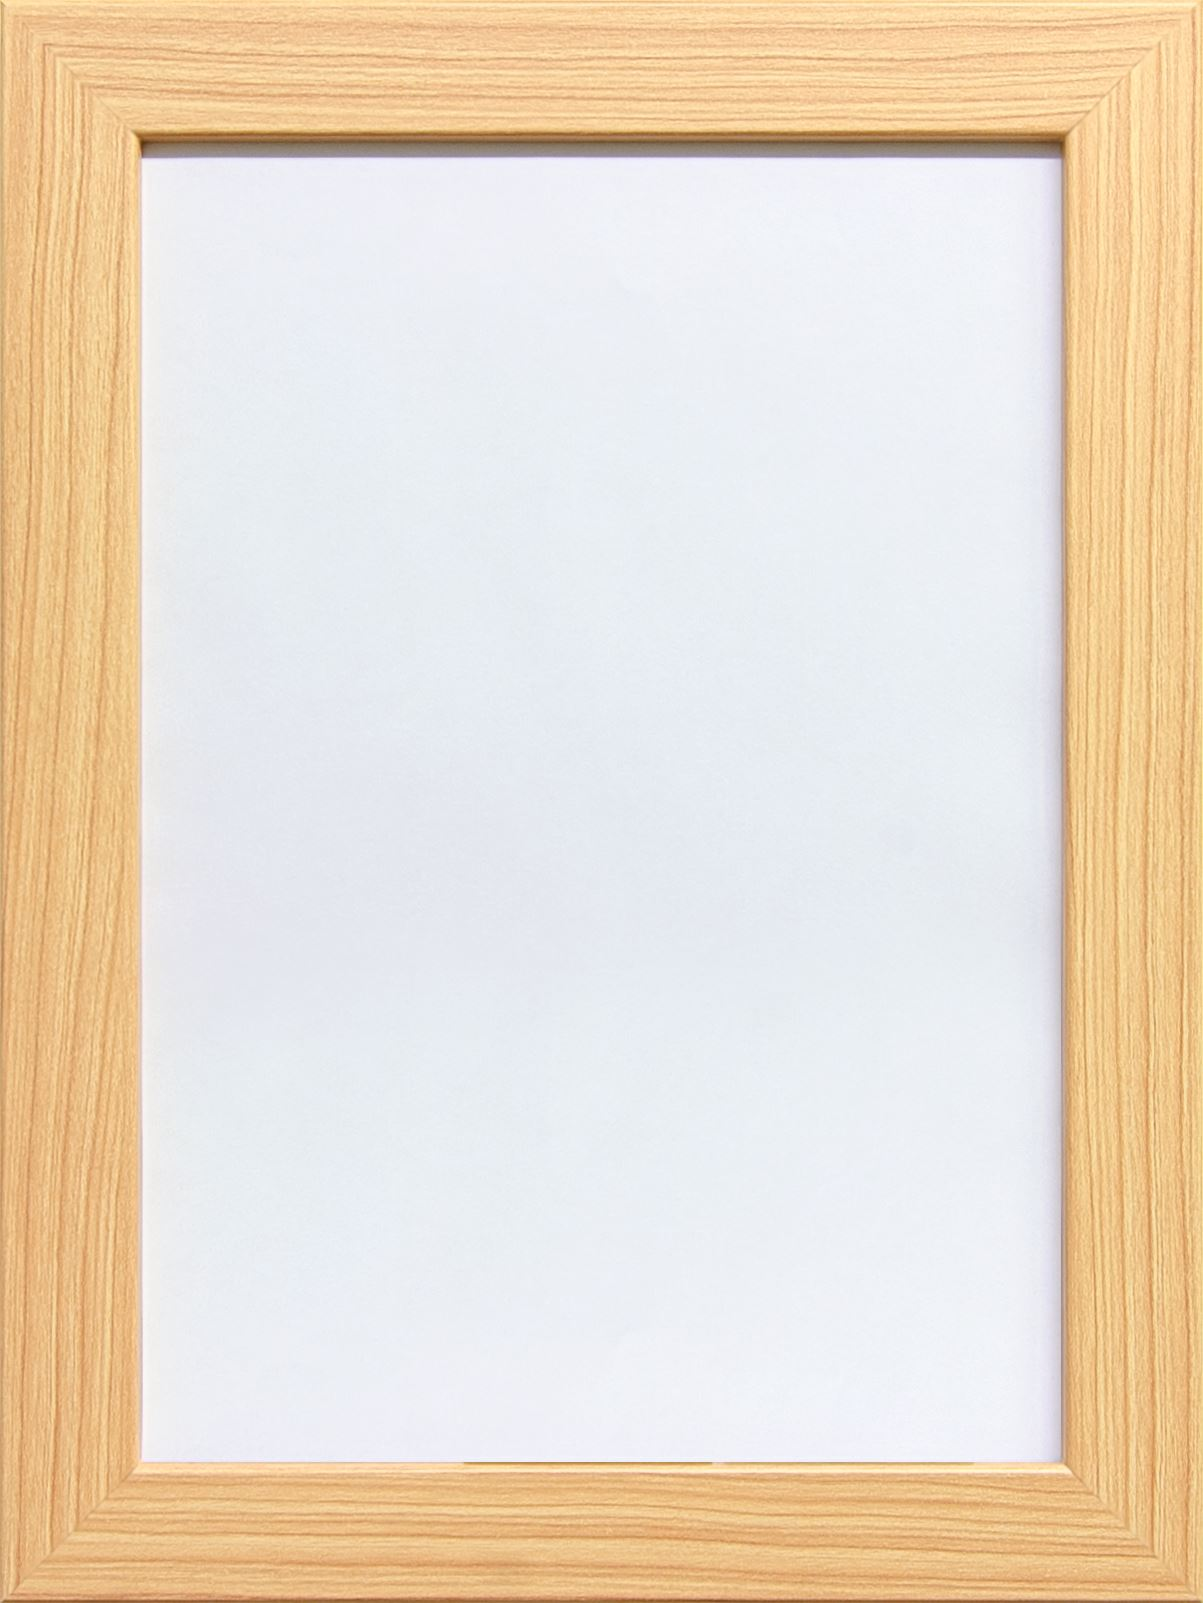 Large picture frames for posters